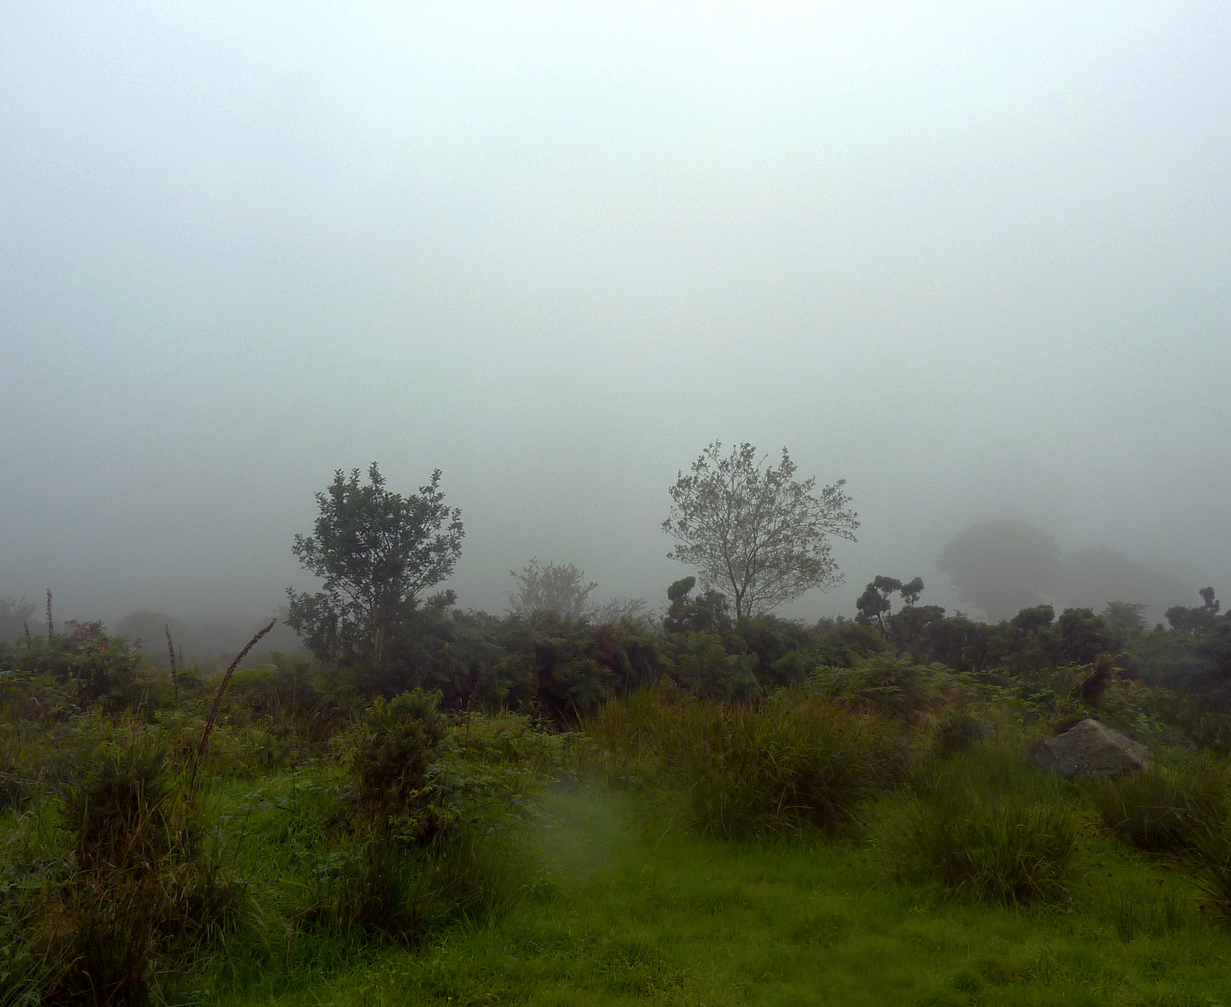 DARTMOOR FOR PPT MIST